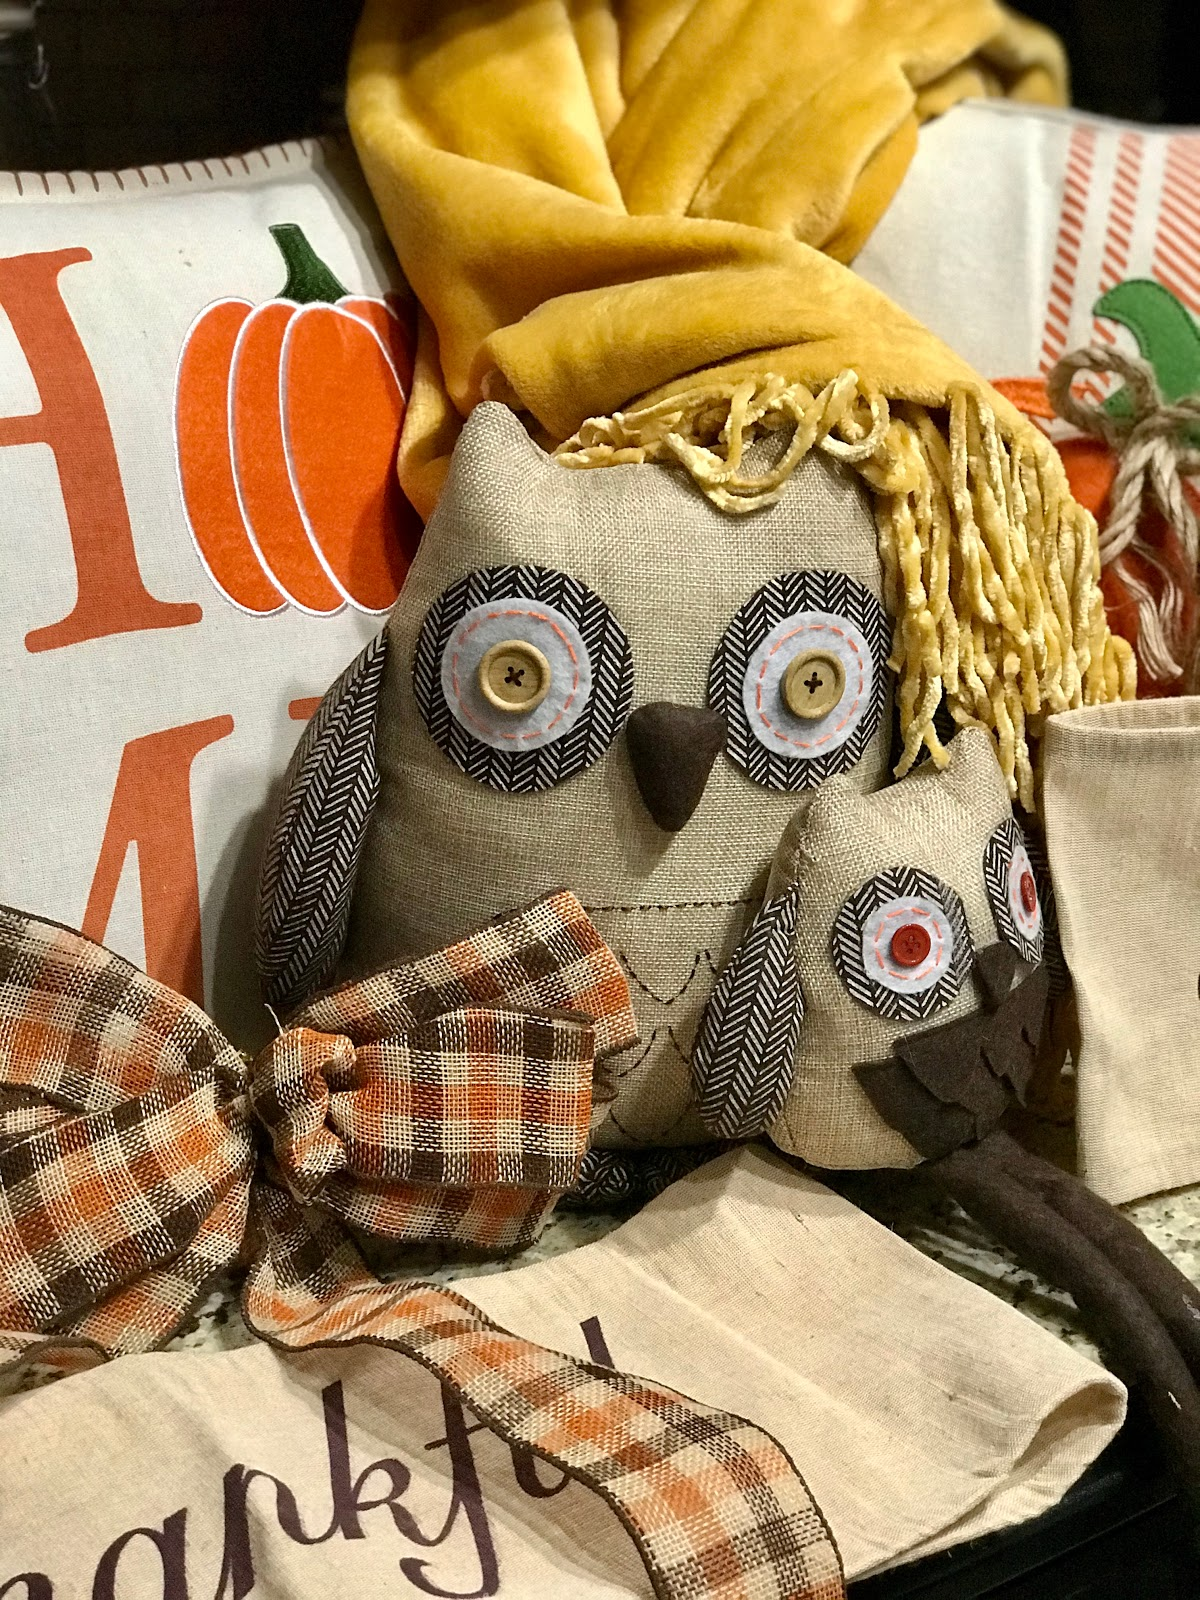 Image: Owl, Yellow Throw Cover, Fall Bow, Fall orange burlap pillows. Seen first on Bits and Babbles Fall Haul. I Guess Owl Get In A Fall Howling Mood!. Traditions